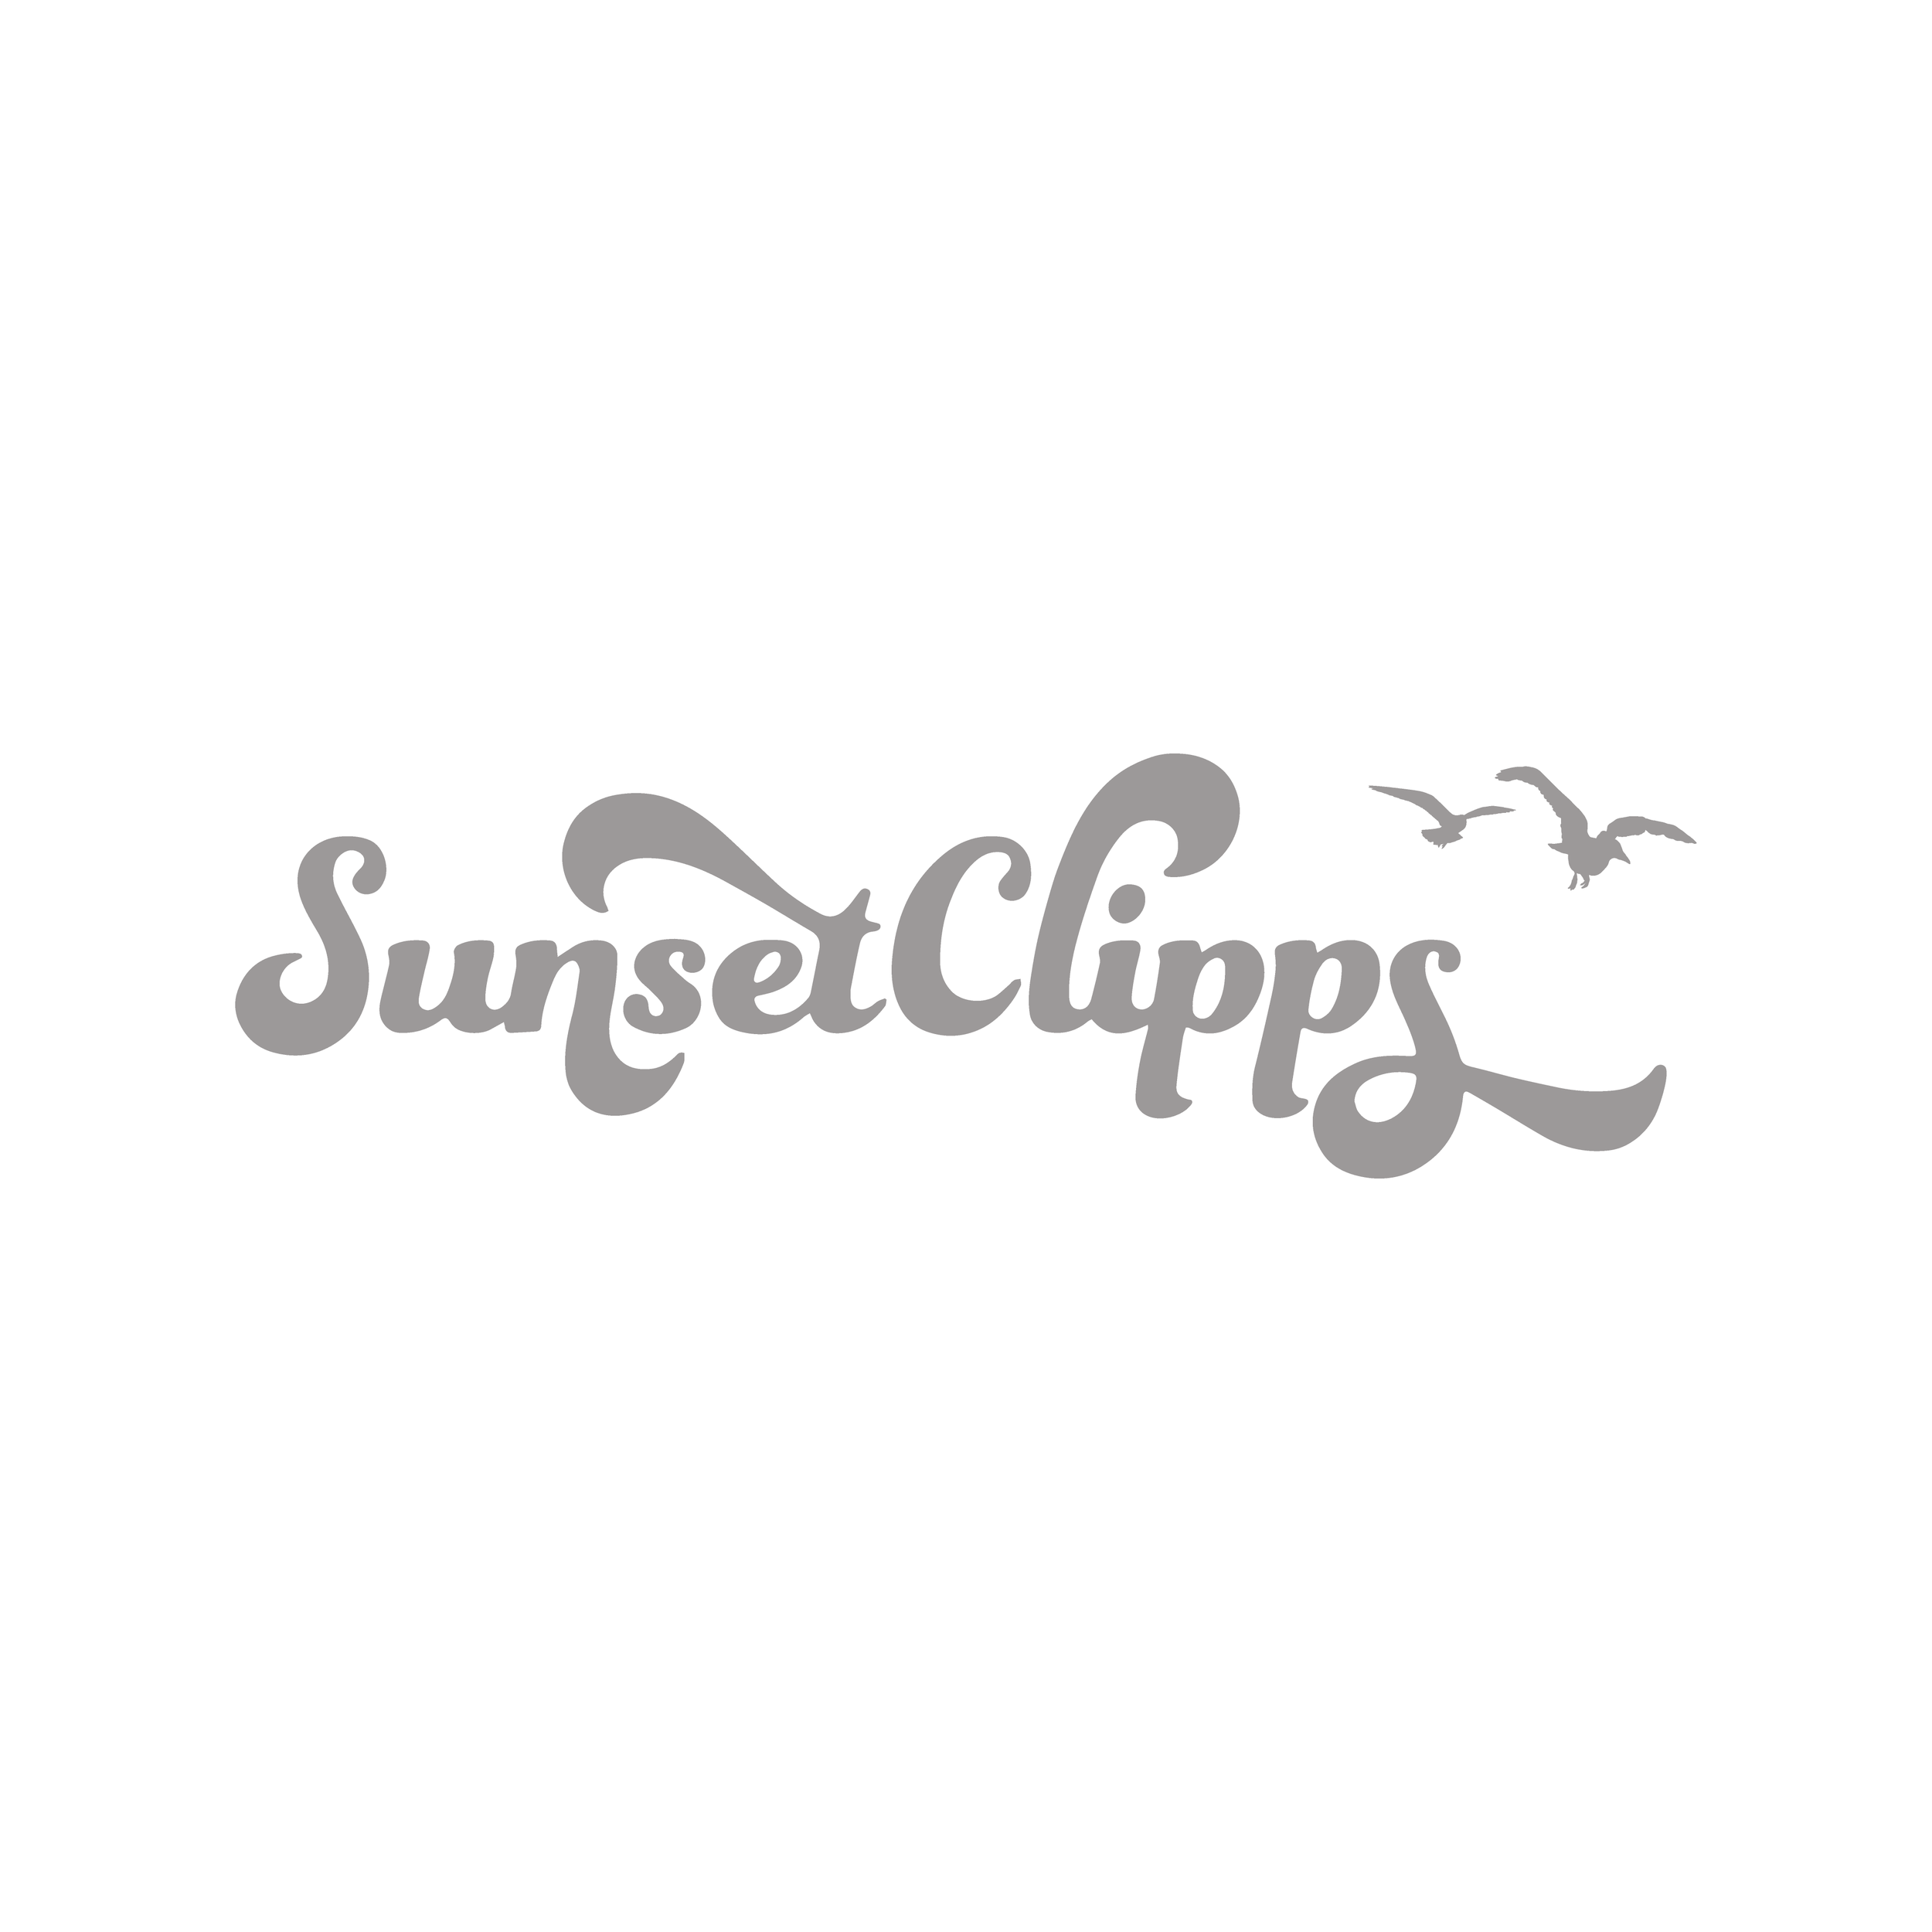 Sunset Clipps Barbershop